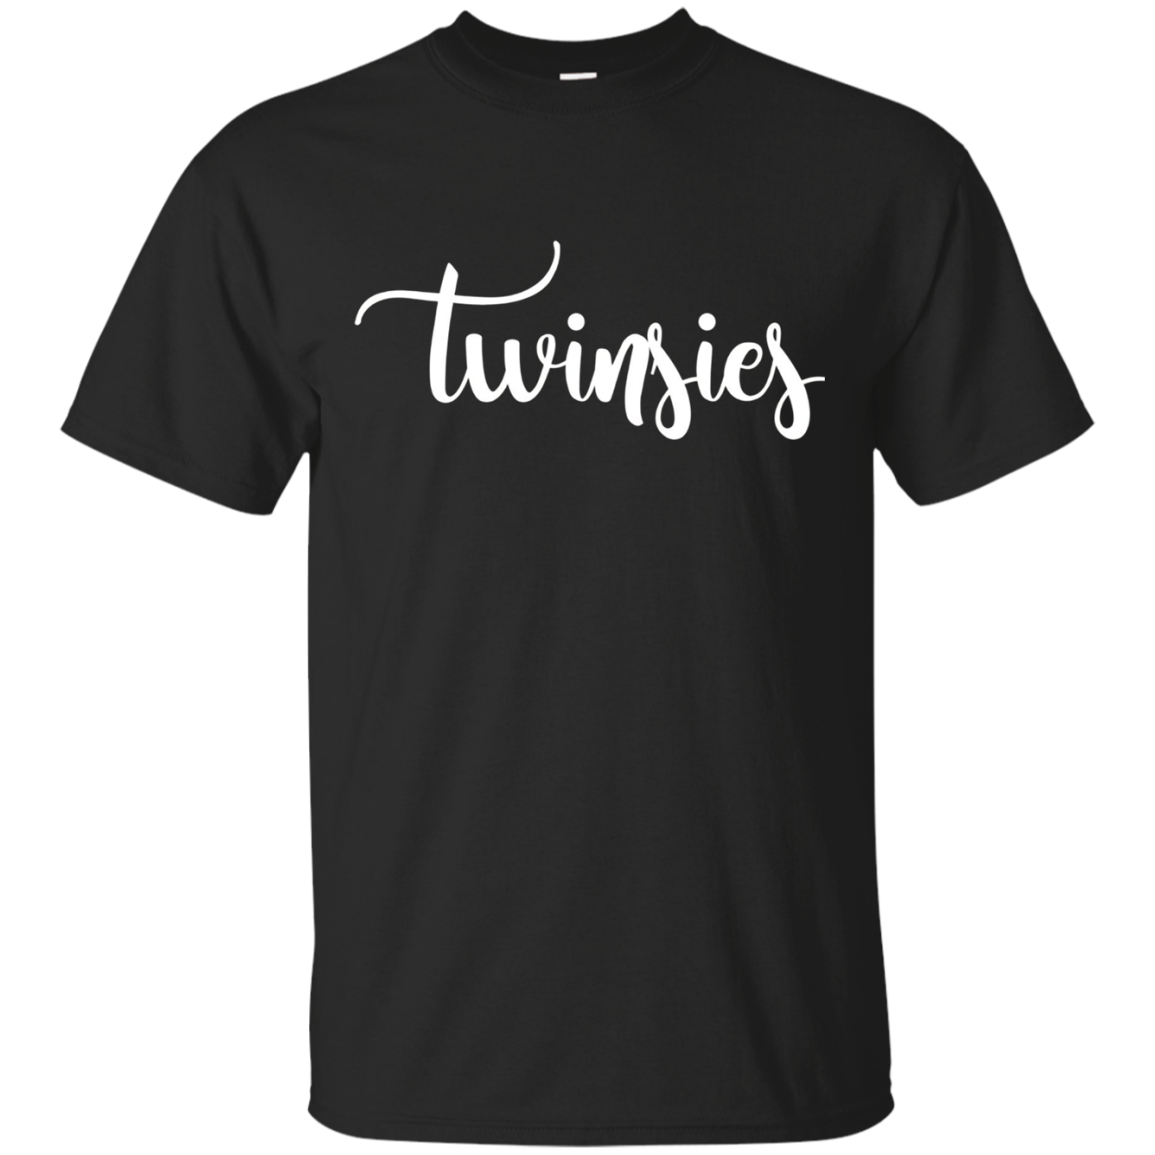 Twinsies T-Shirt - Mommy & Me or Sister Shirt